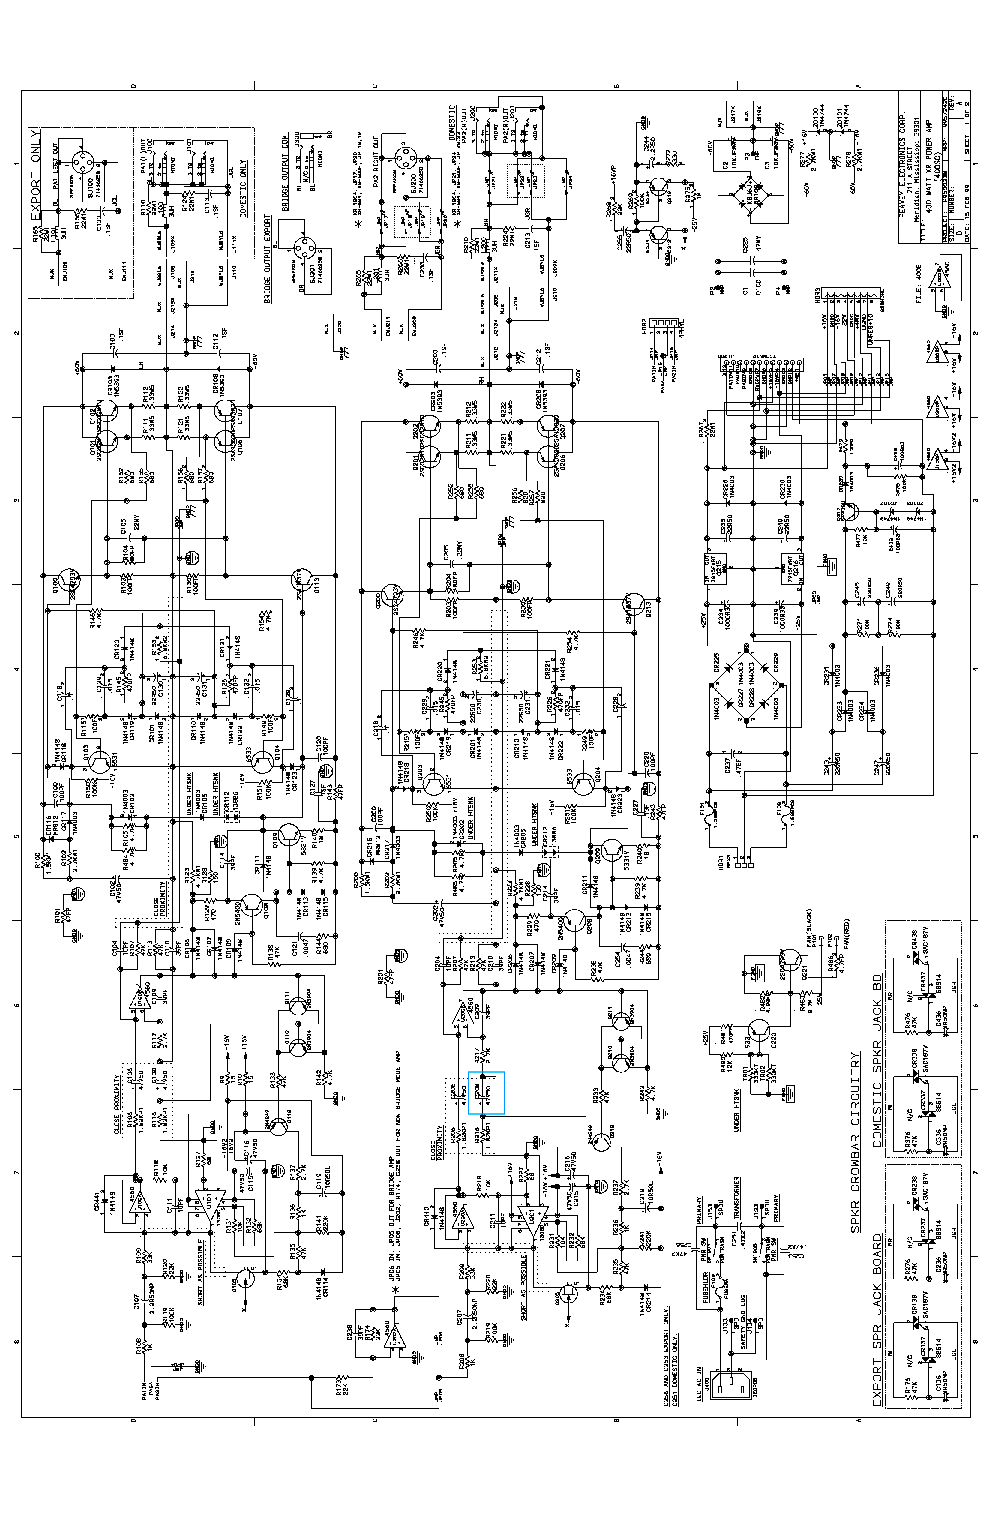 Attractive Peavey Rockmaster Schematic Collection - Wiring Diagram ...